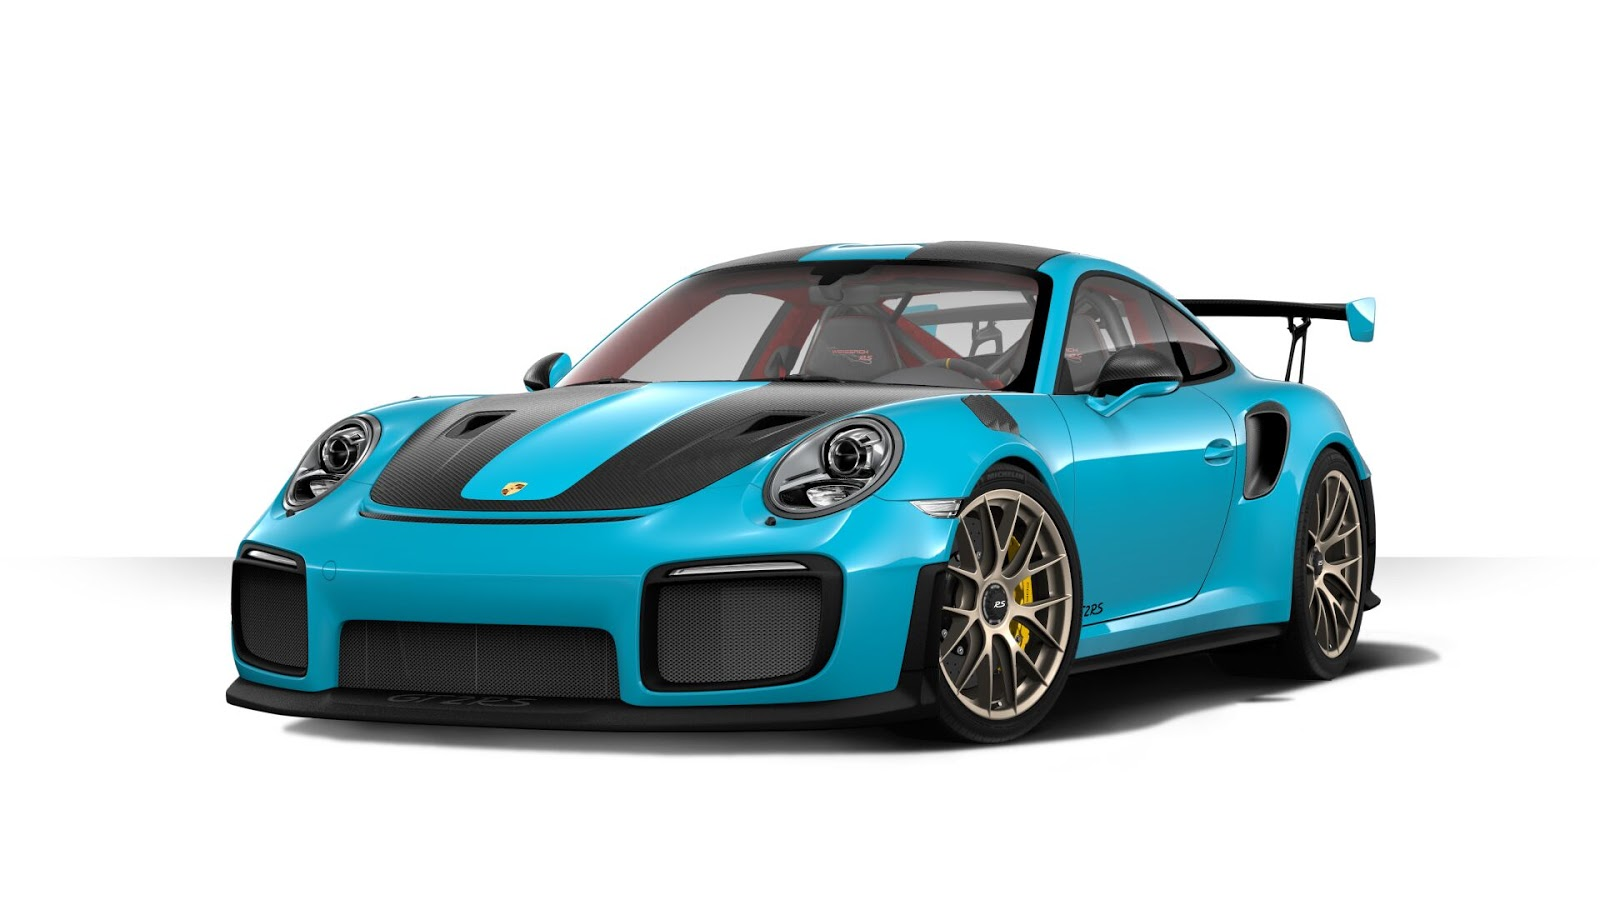 porsche 911 gt2 rs configurator lets you design your final widowmaker carscoops. Black Bedroom Furniture Sets. Home Design Ideas